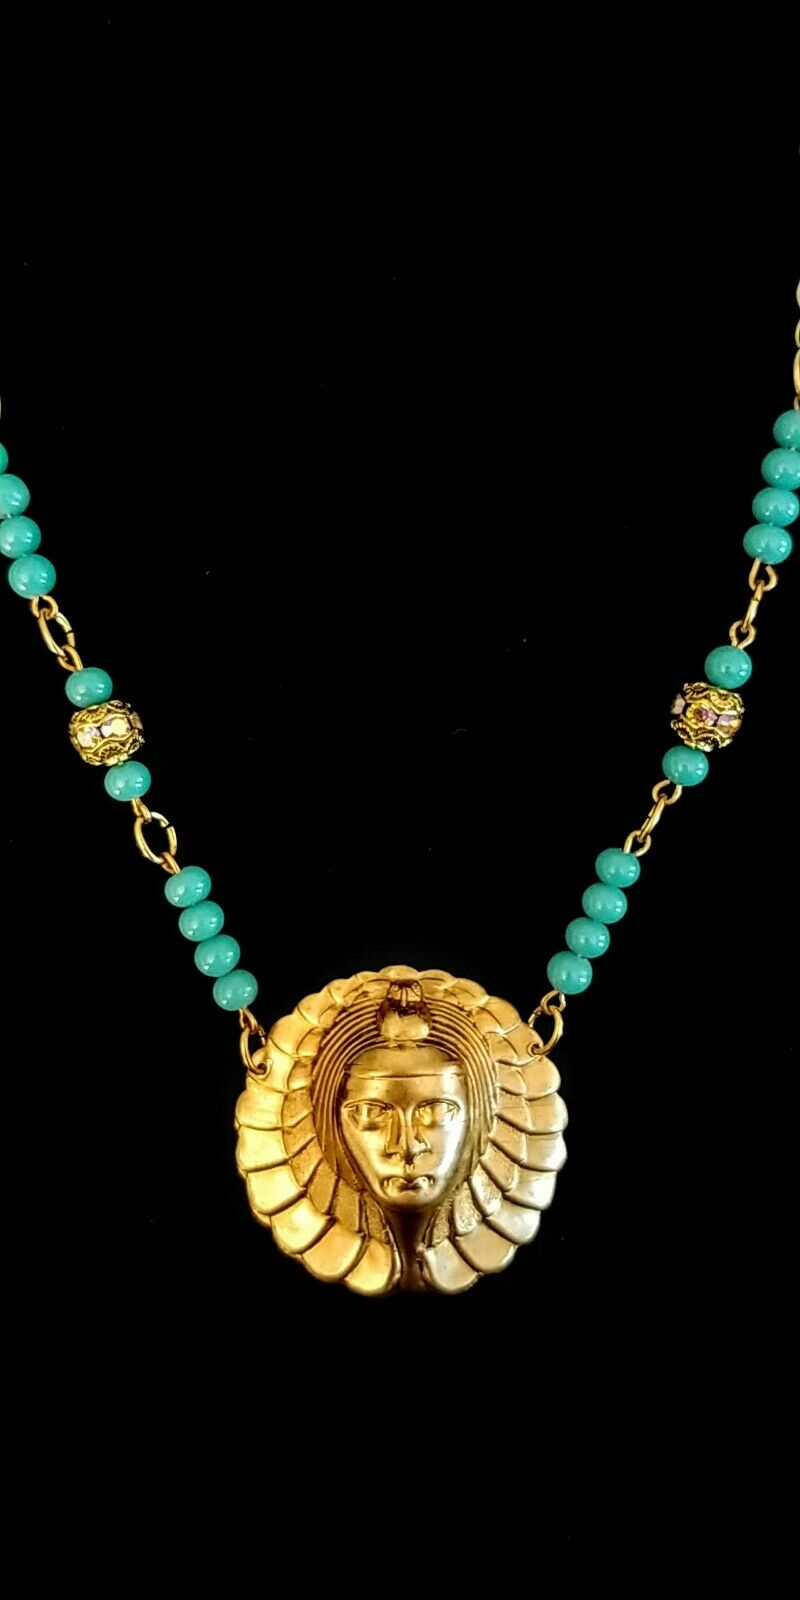 Vintage Egyptian Revival Necklace - image 6